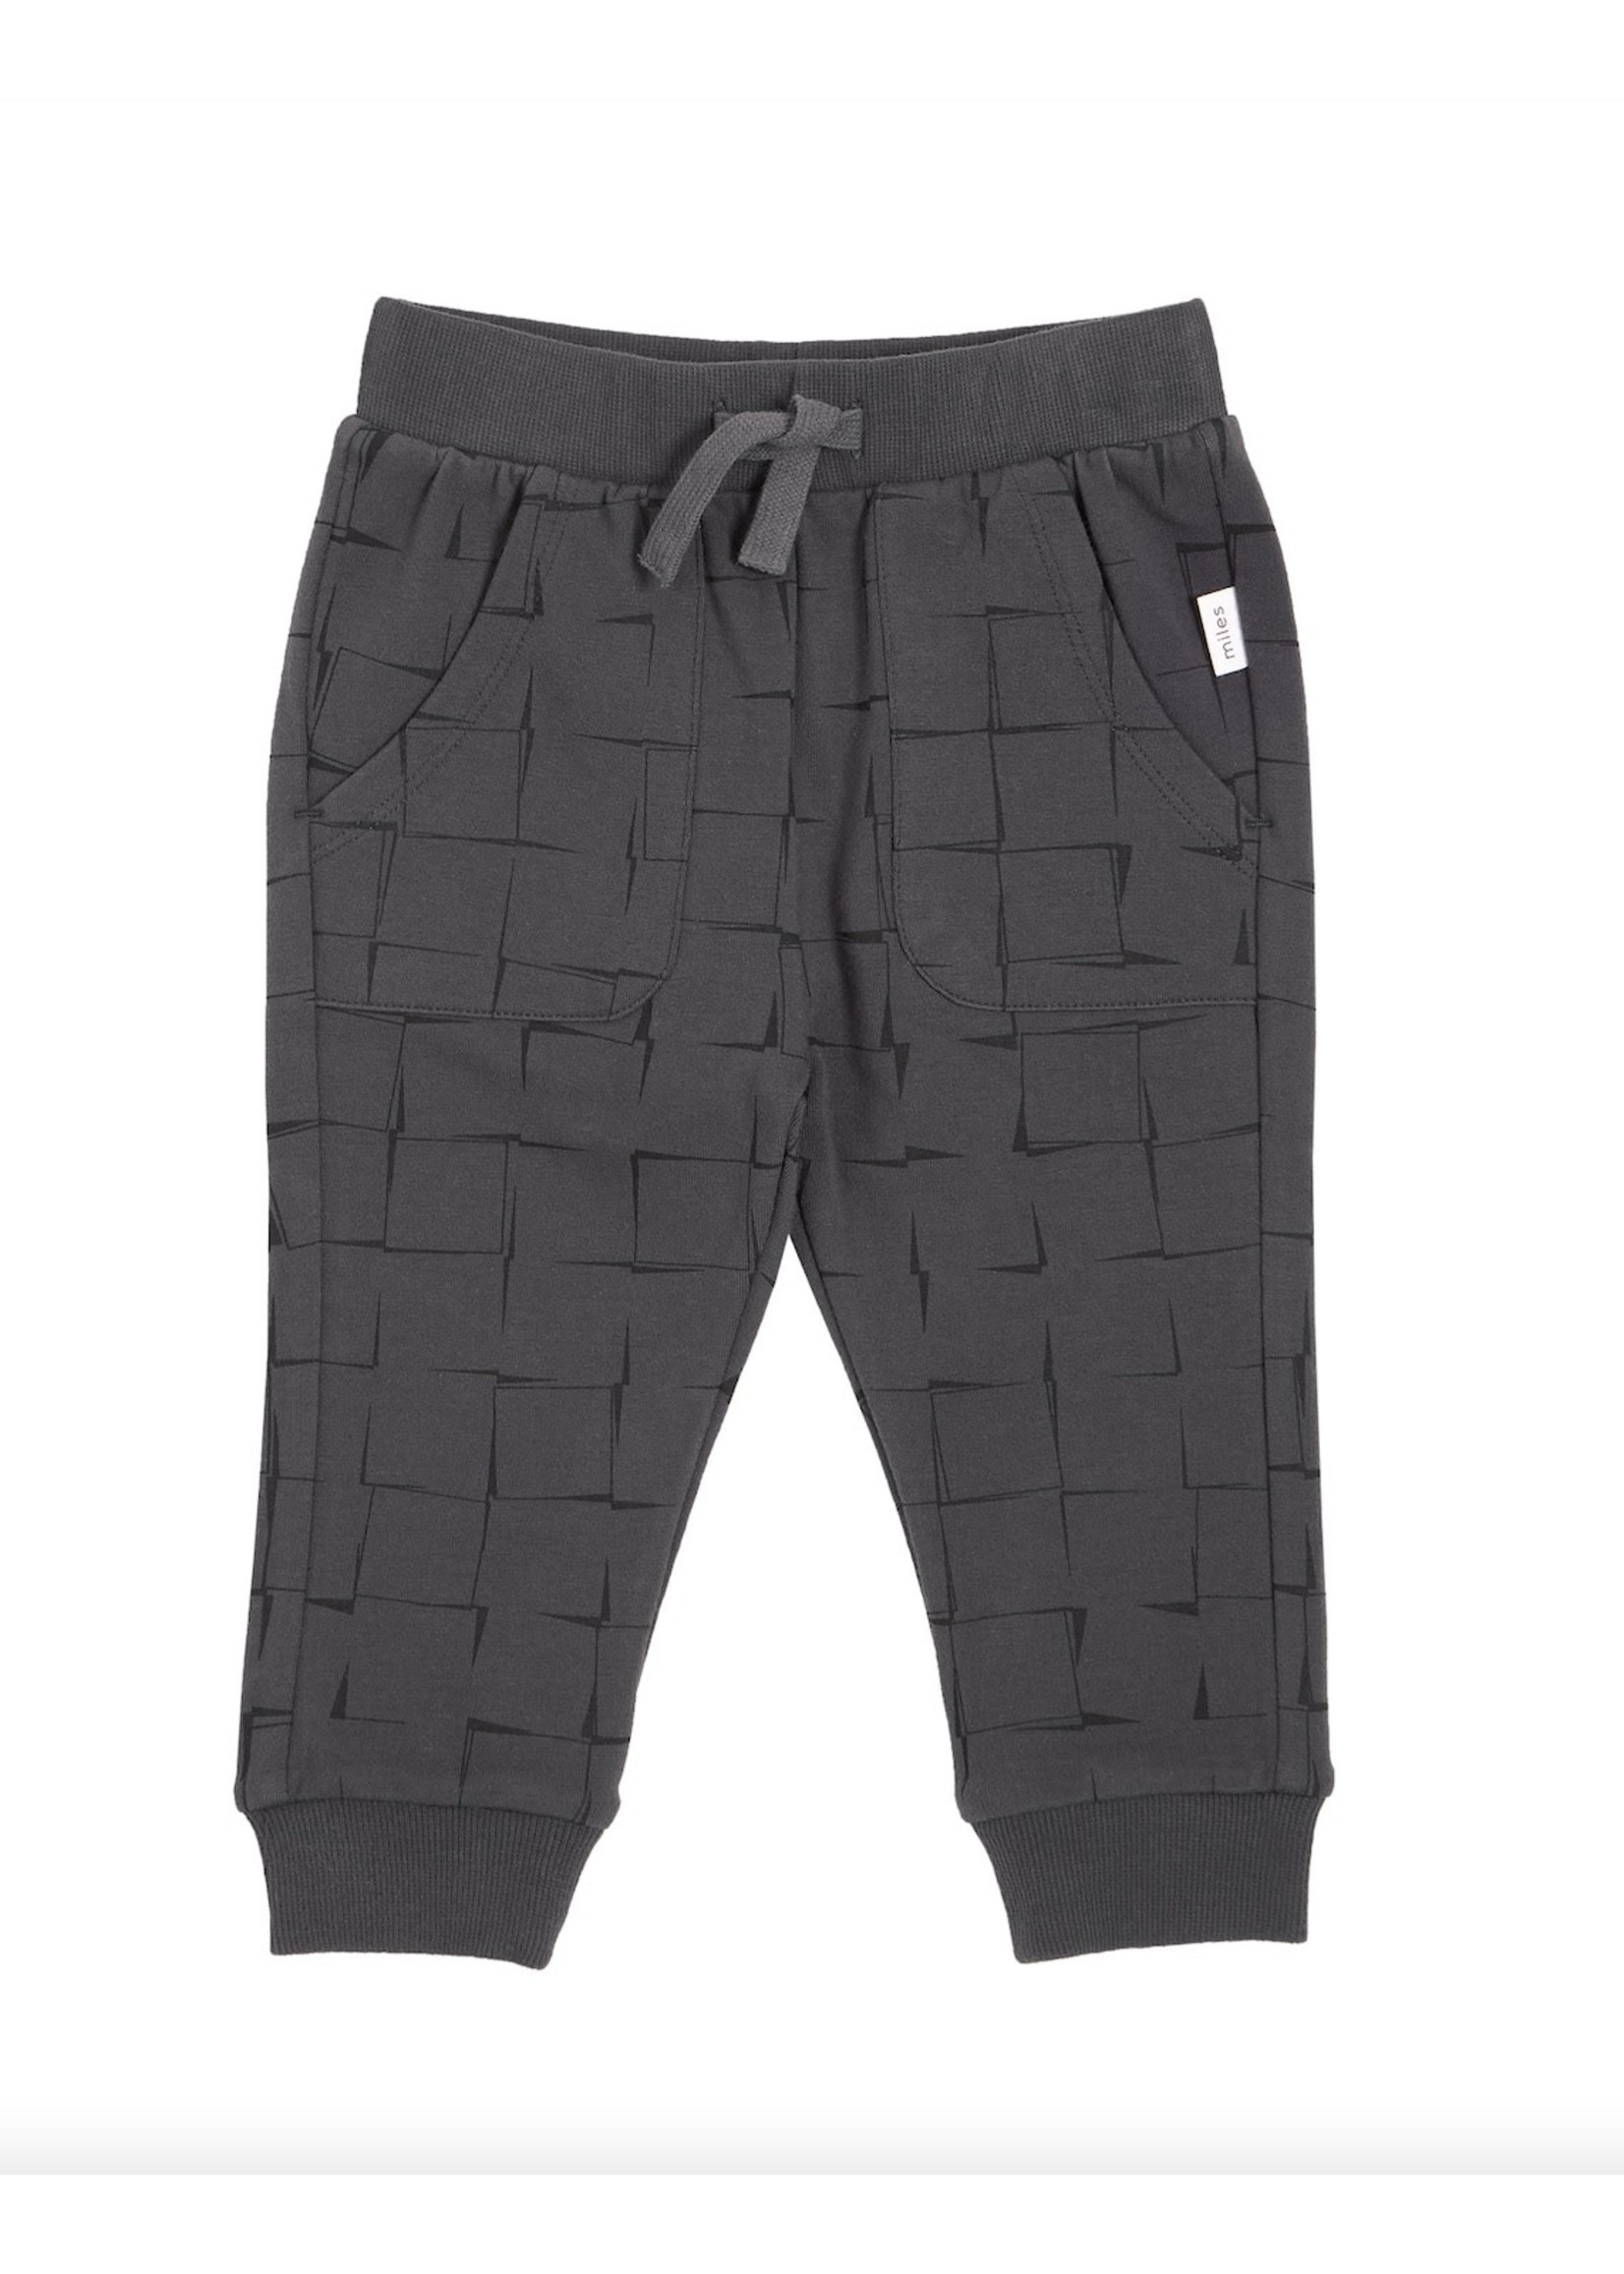 Miles Baby Miles, Grid Print on Charcoal Baby Jogger